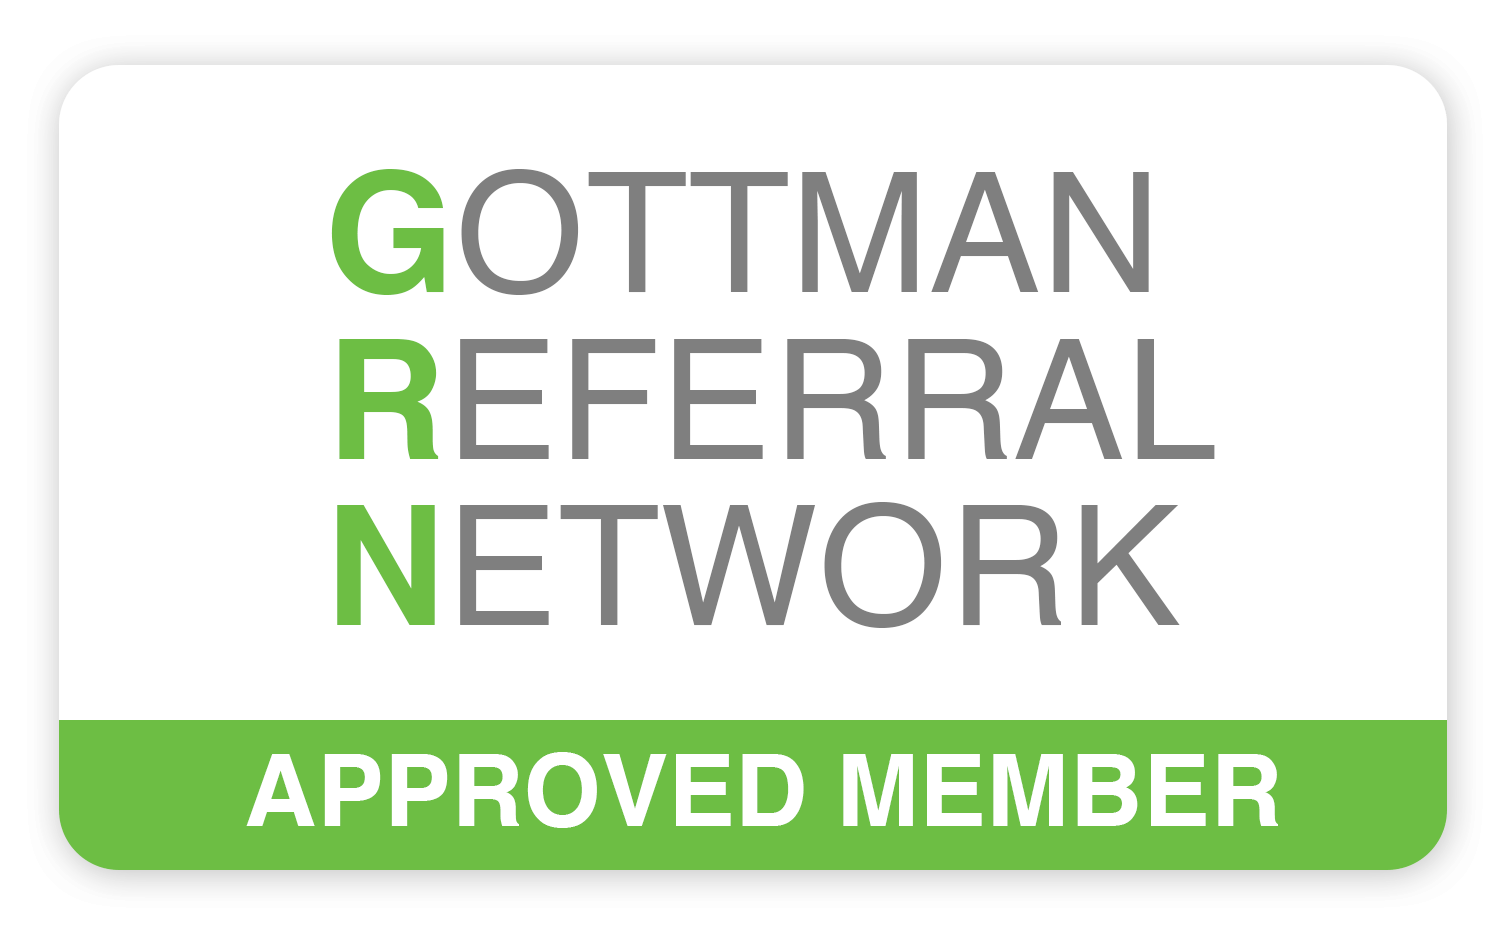 Deborah Woodall Carroll's profile on the Gottman Referral Network